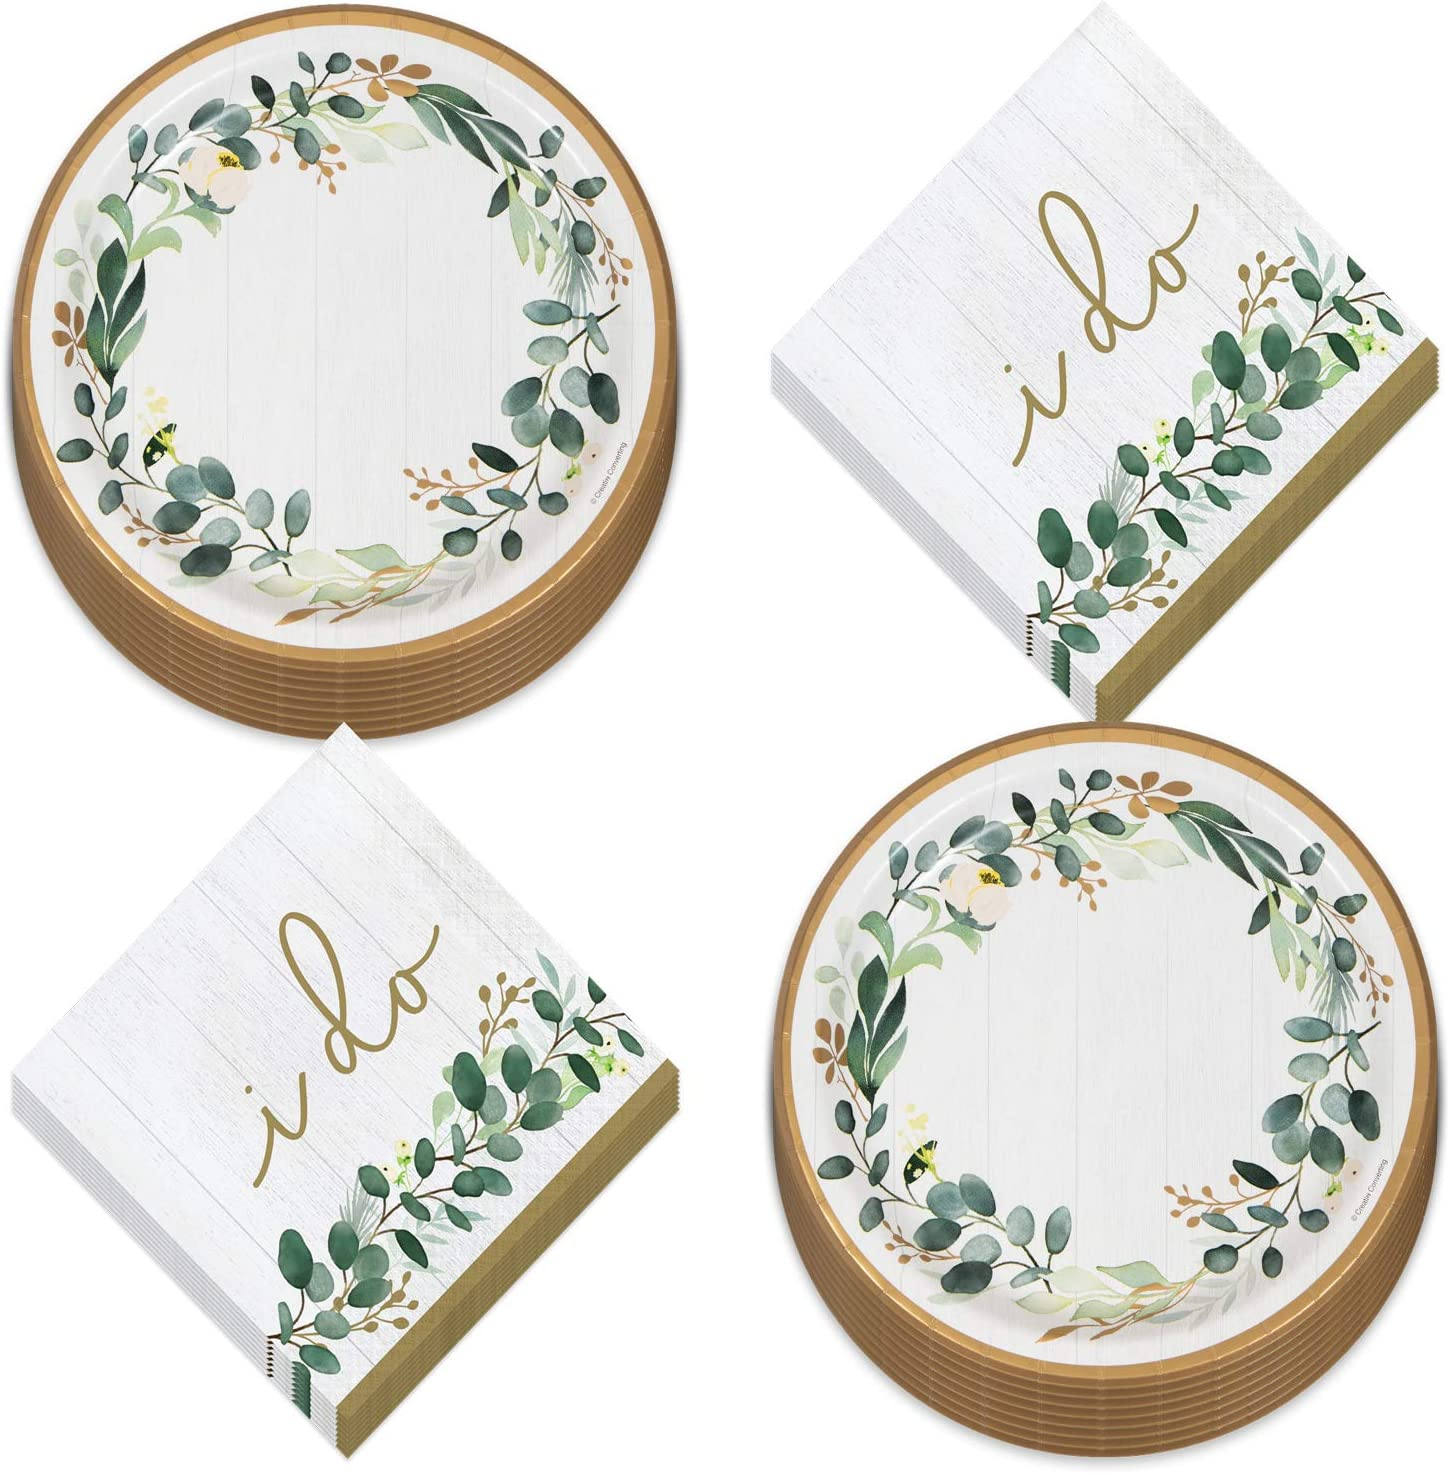 Eucalyptus Greens Garden of Love Bridal Party Supplies - White Wood Plank Paper Dinner Plates &